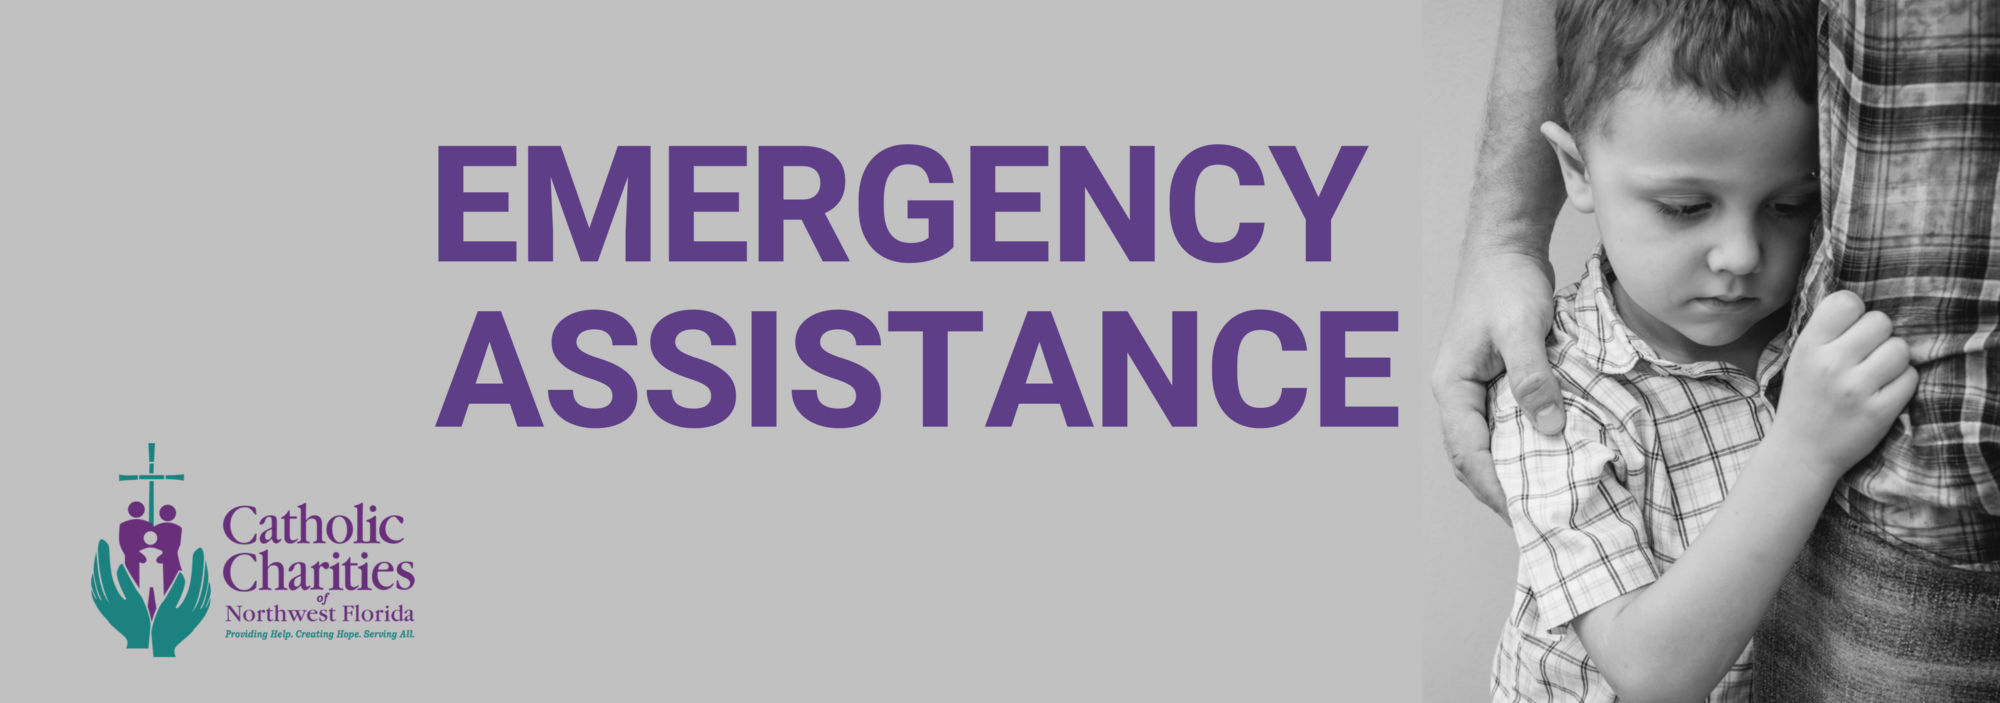 emergency Assistance header